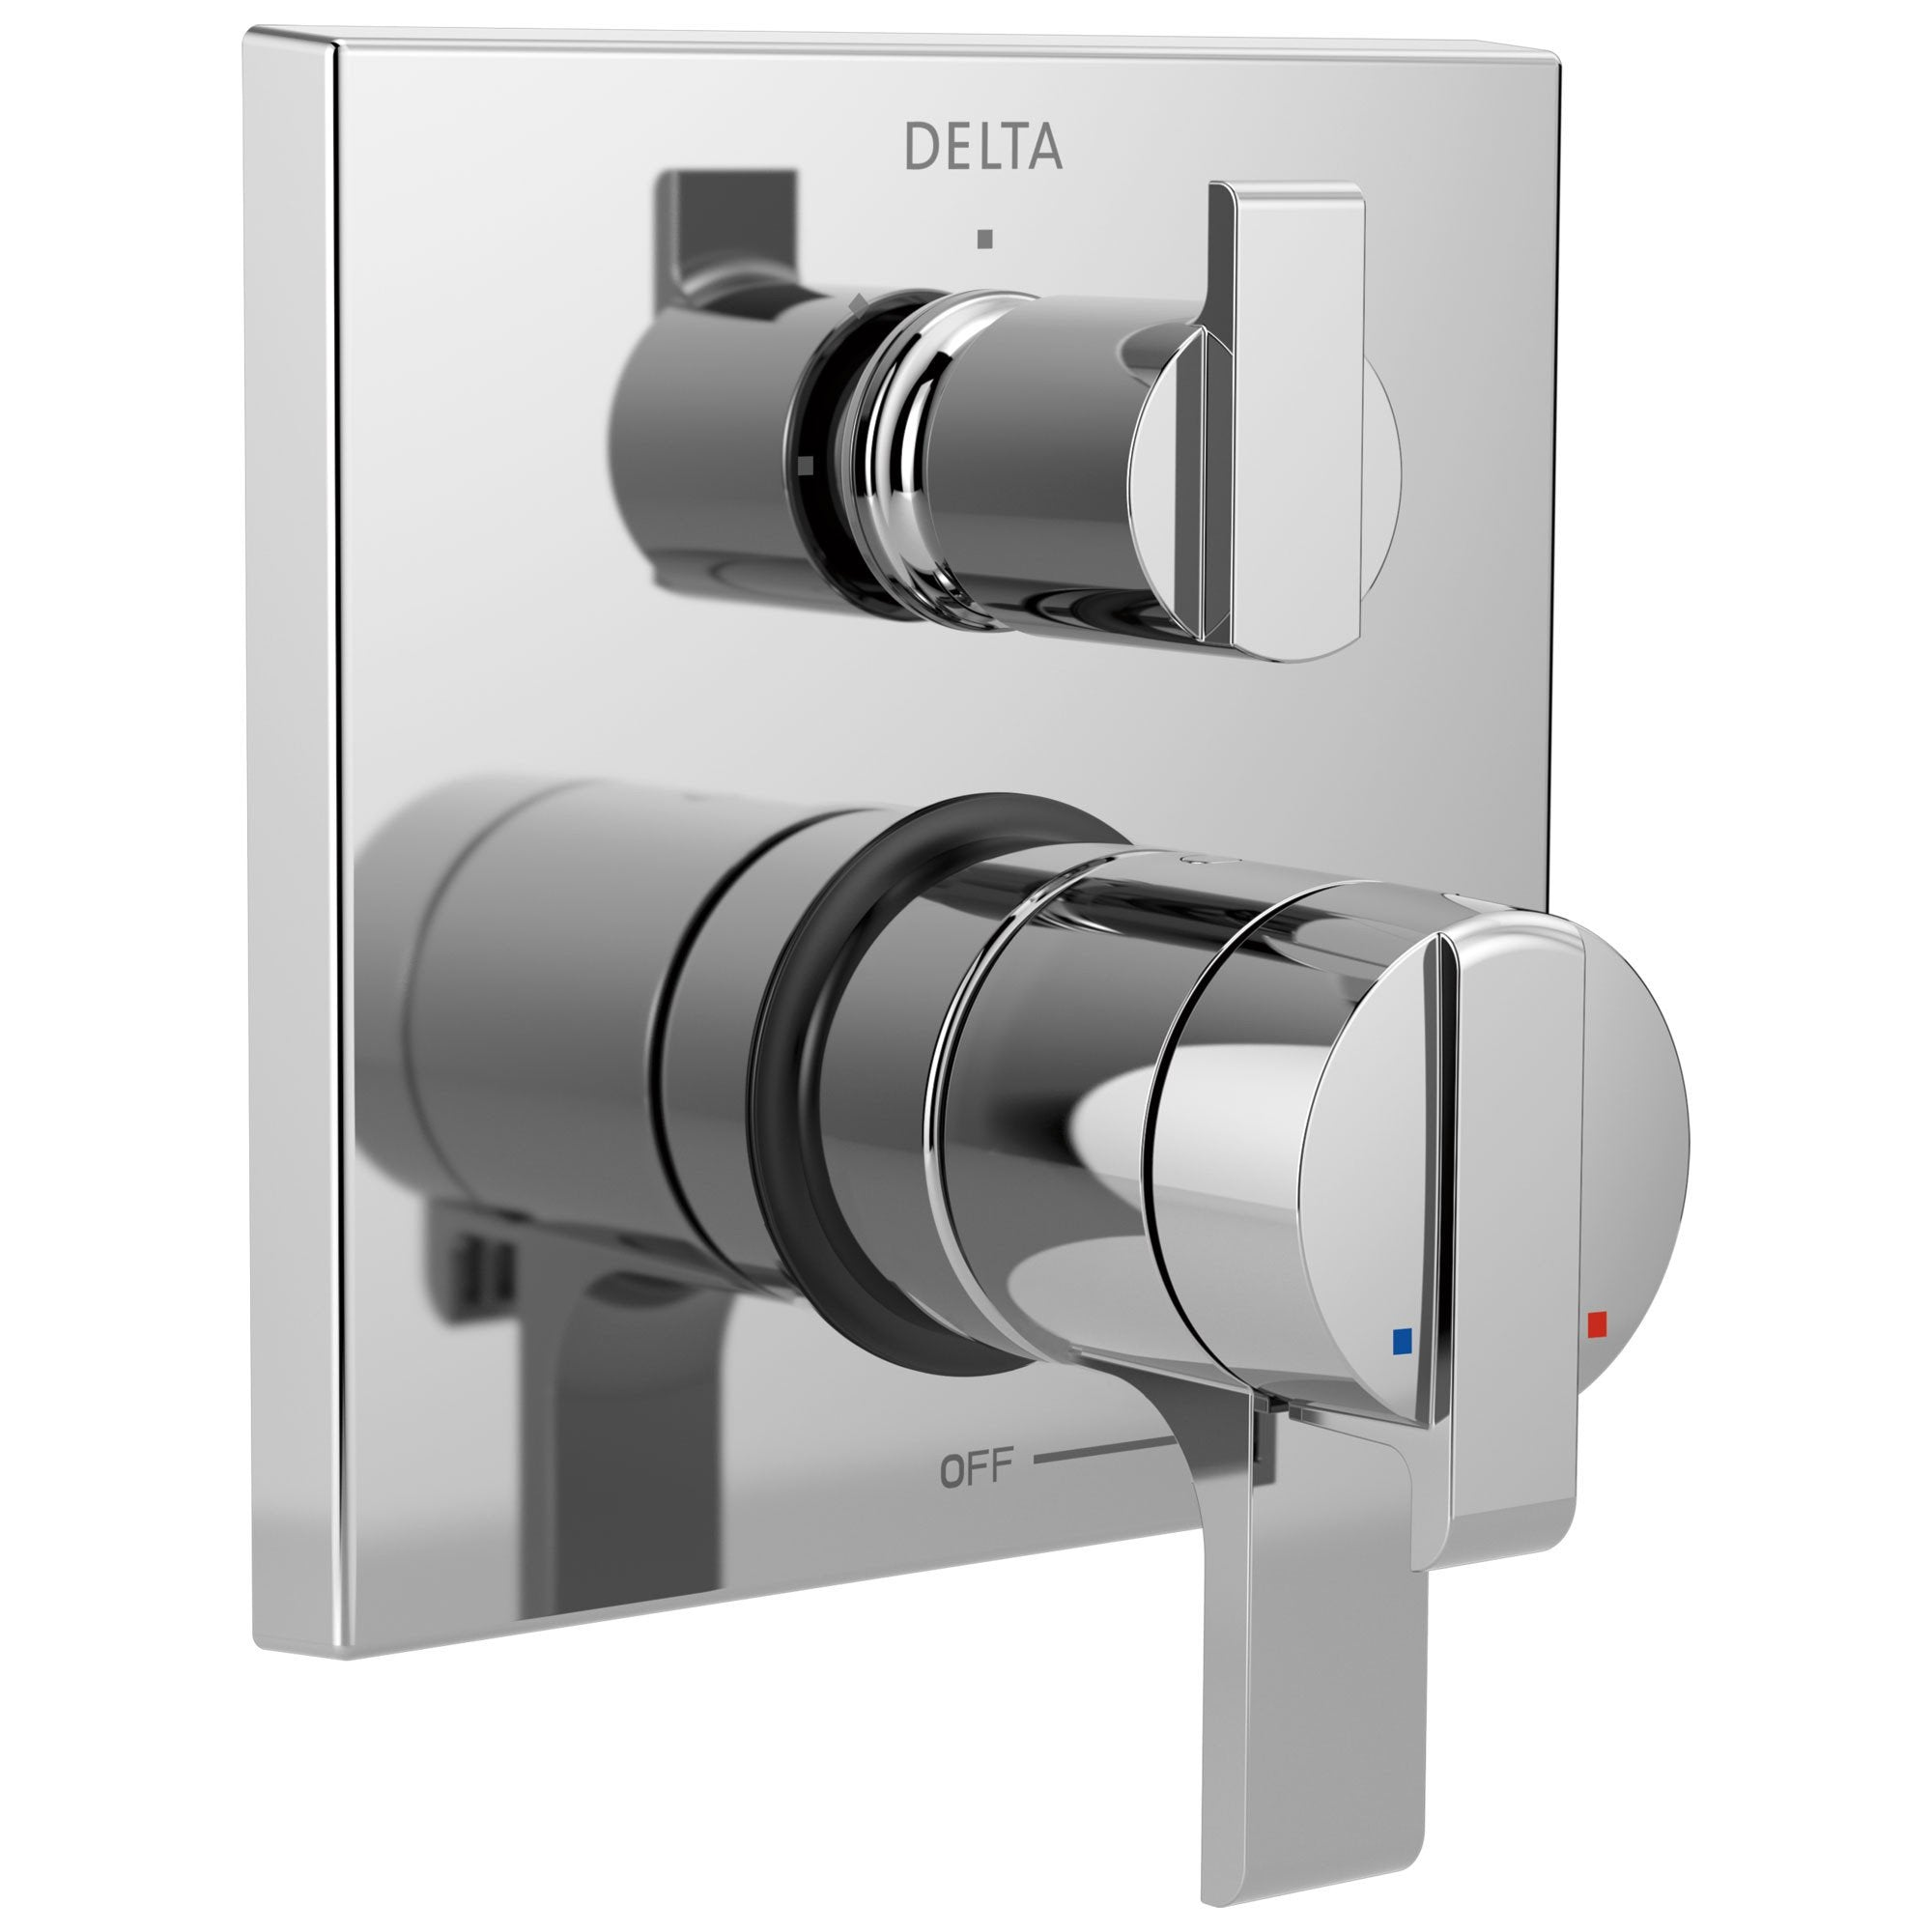 Delta Ara Collection Chrome Angular Modern Monitor 17 Shower Faucet Control Handle with 3-Setting Integrated Diverter Trim (Requires Valve) DT27867